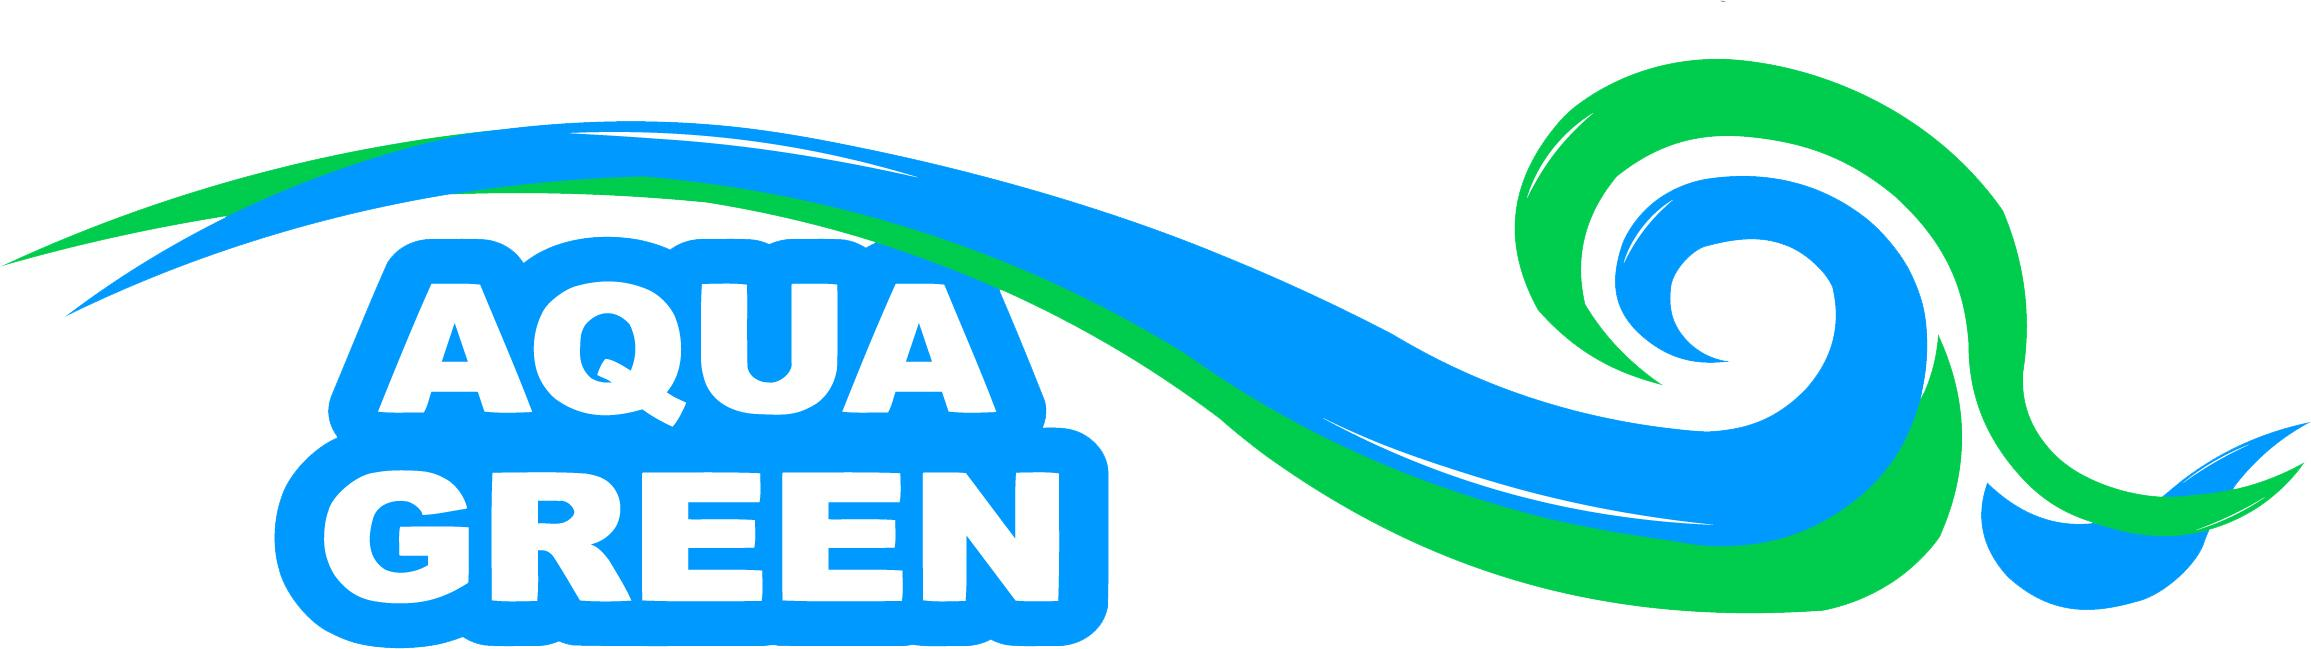 aquagreen logo_1_21_1